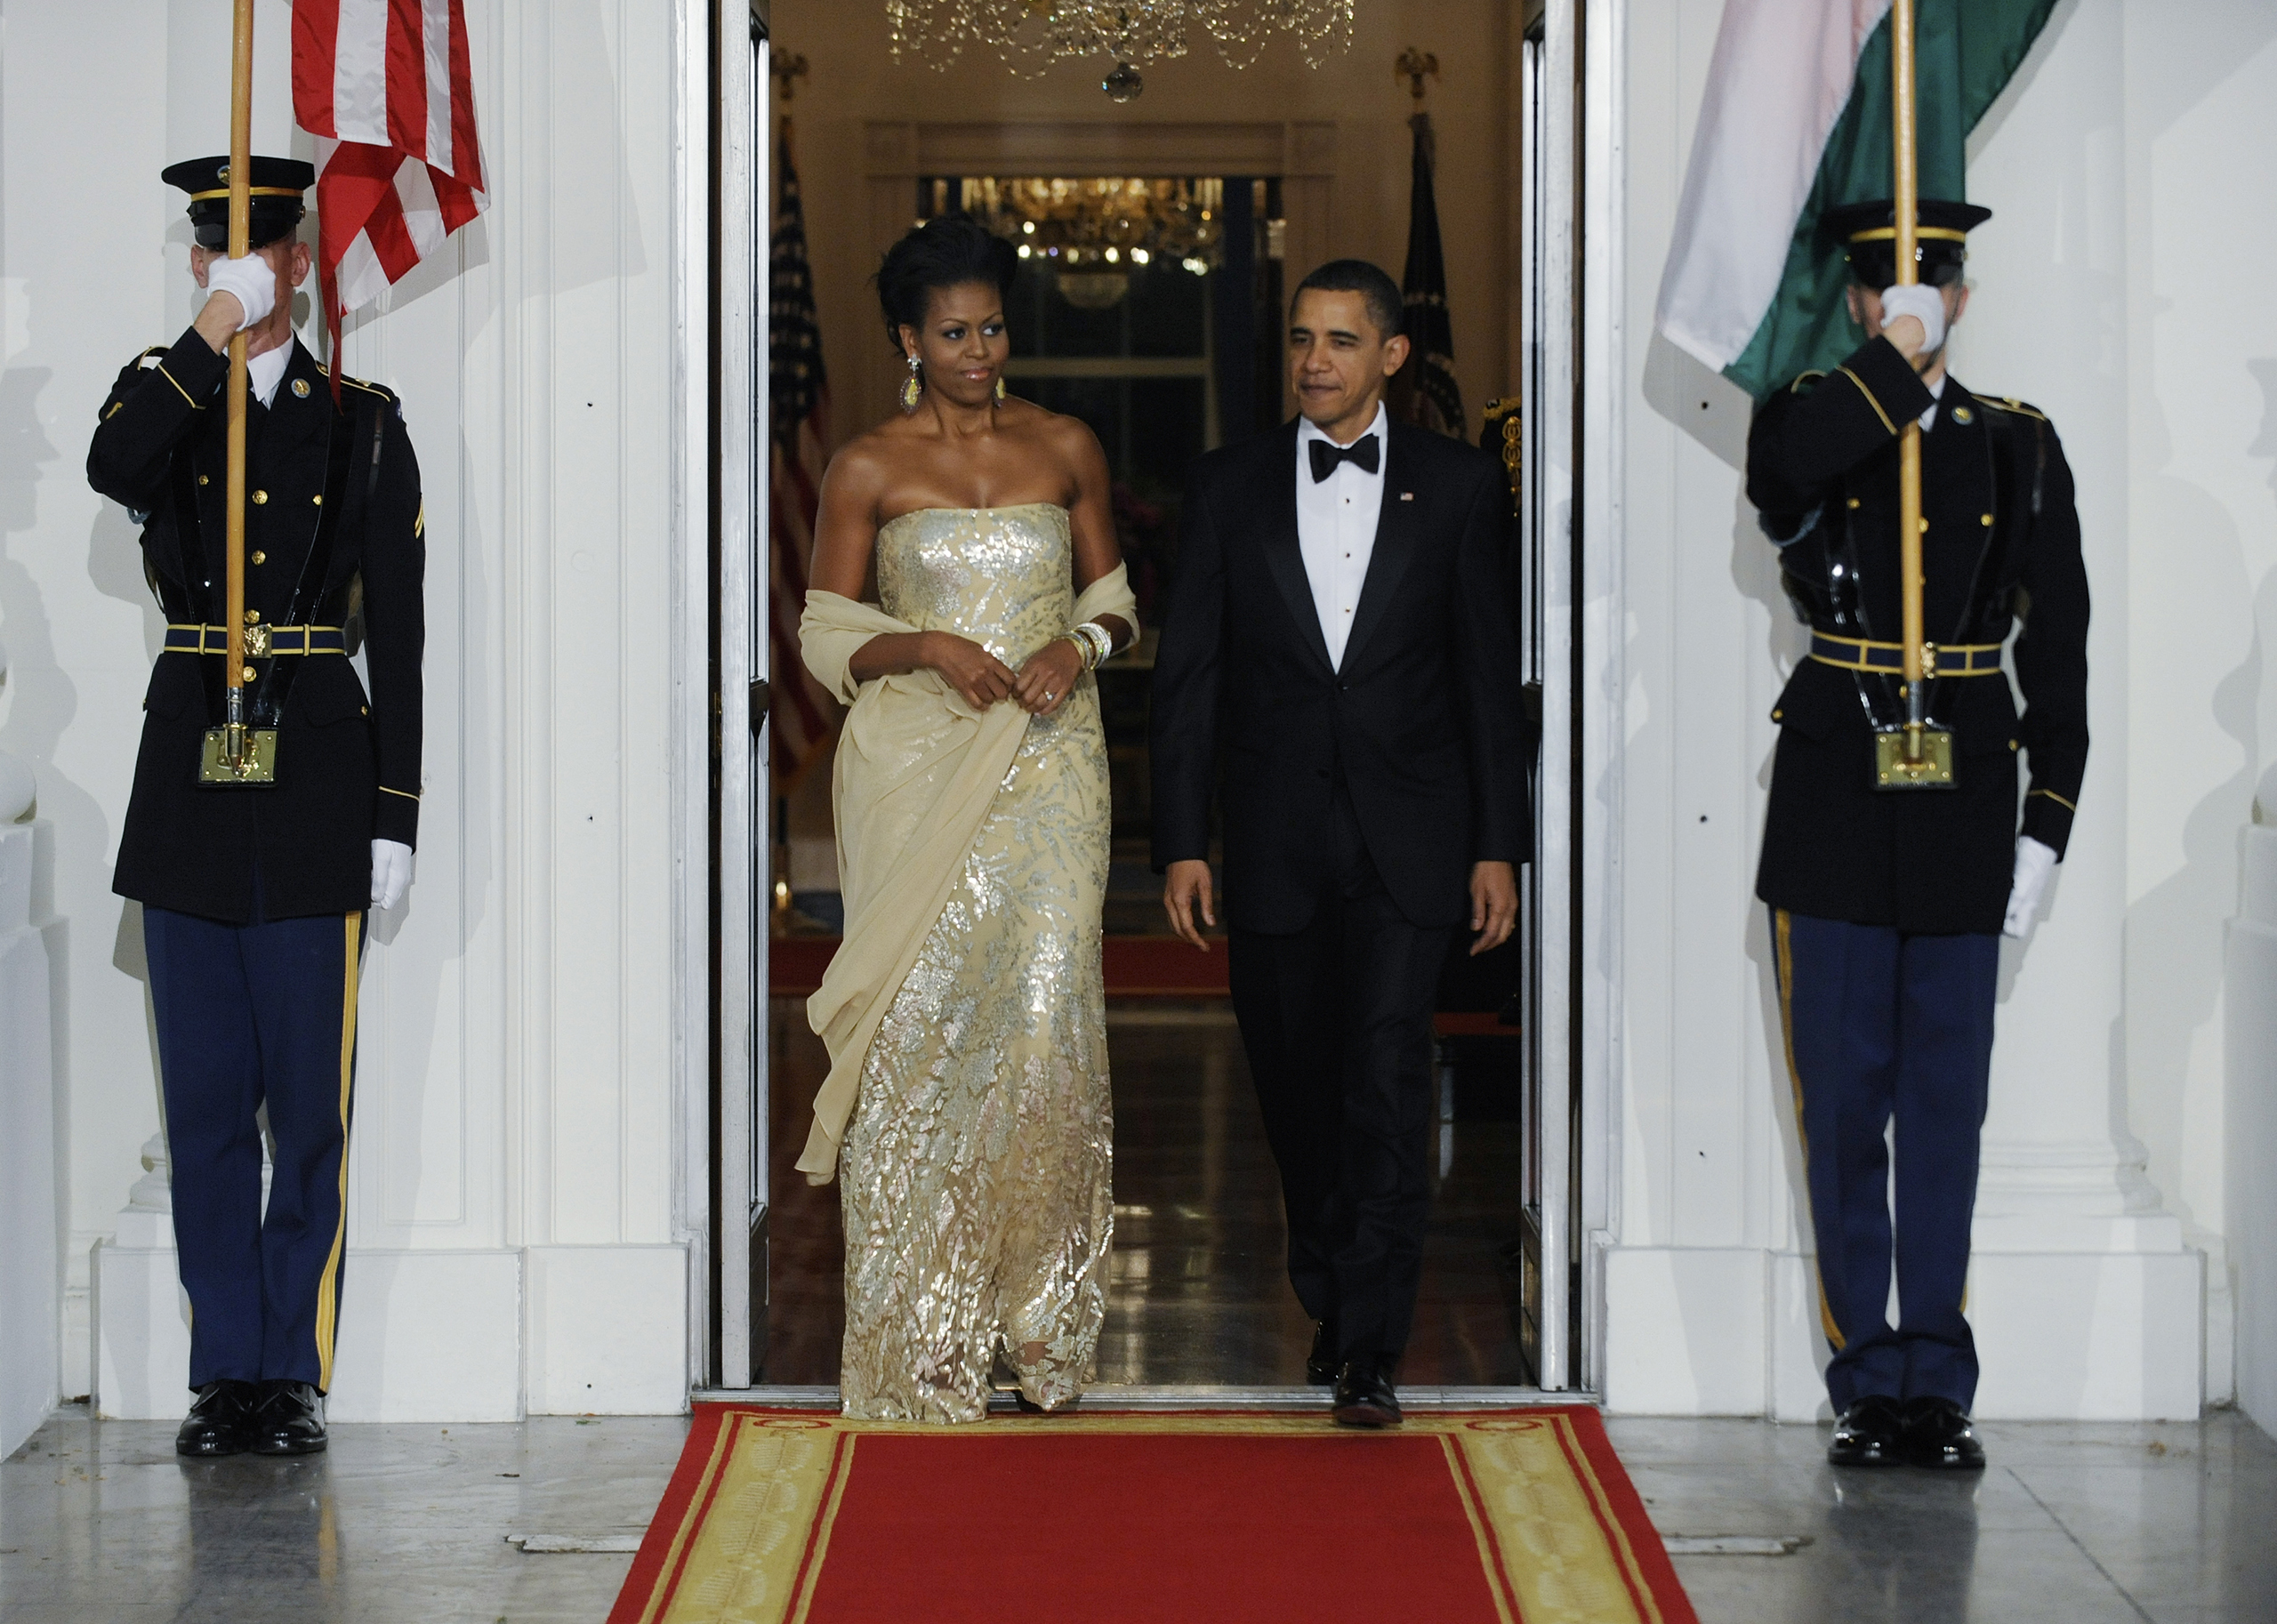 Barack Obama and  Michelle Obama walk out to the North Portico to welcome India's Prime Minister Manmohan Singh and his wife Gursharan Kaur to the state dinner at the White House in Washington, D.C., on Nov. 24, 2009.